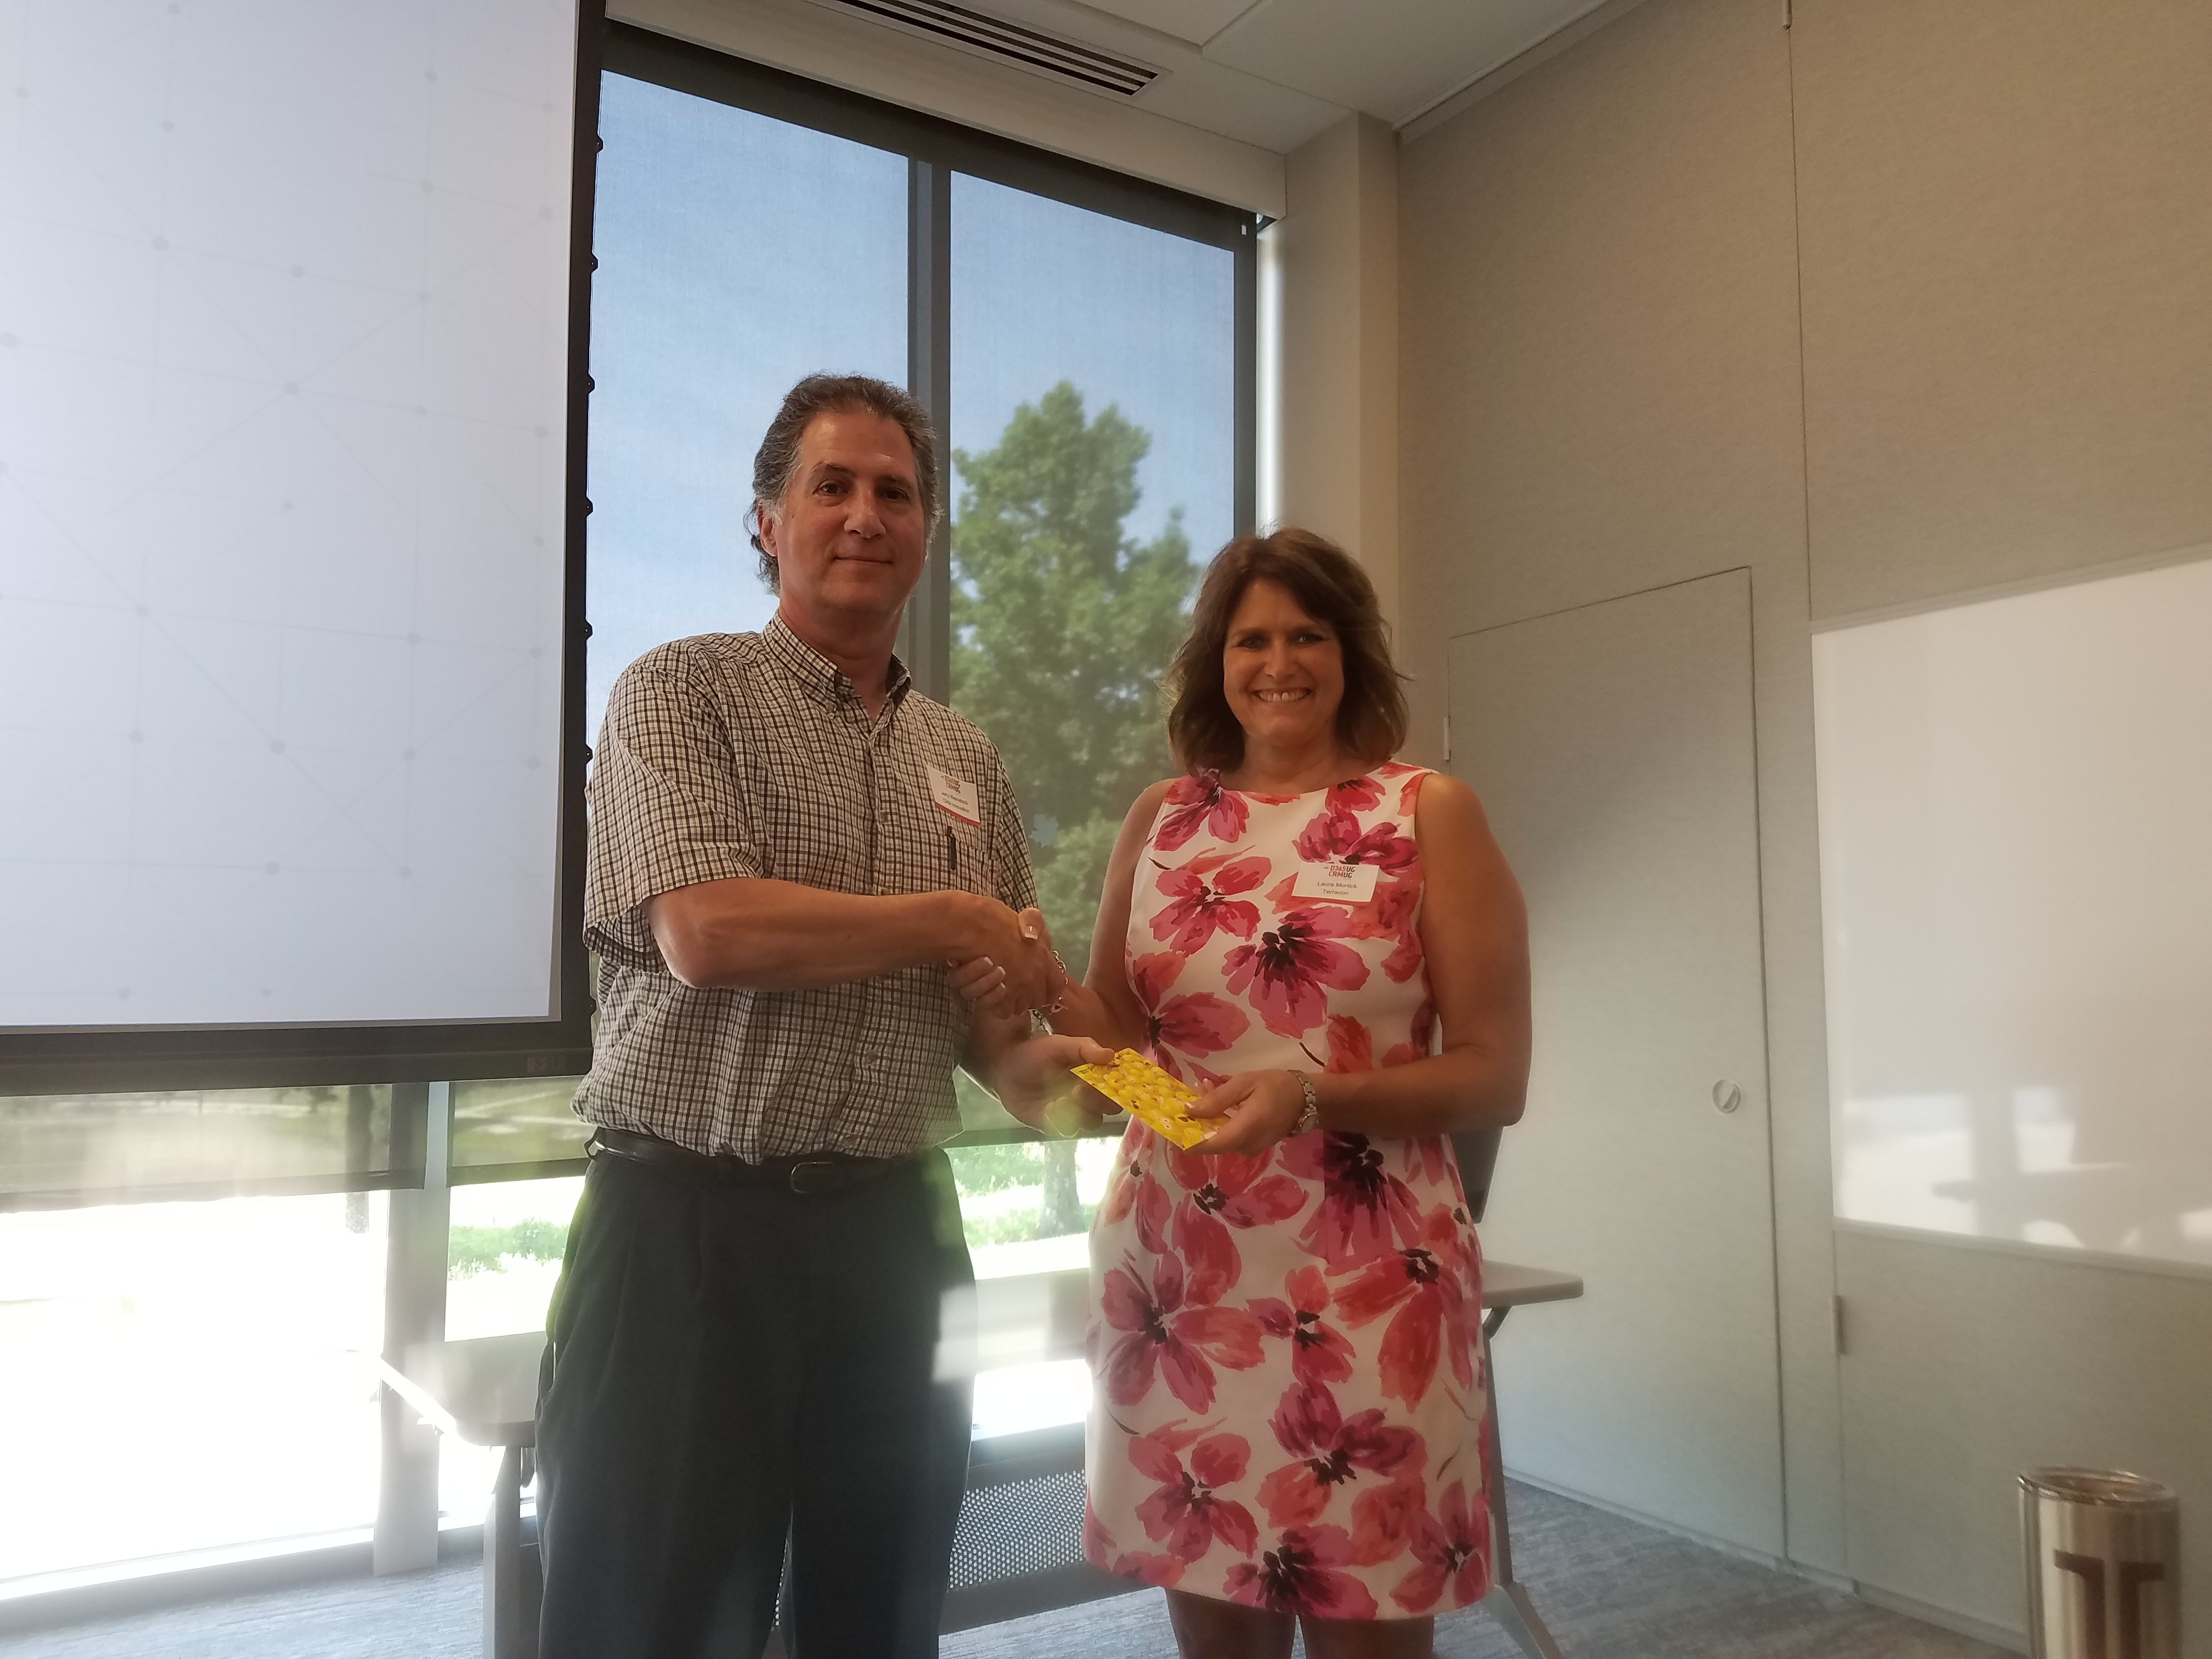 Laura Mortick - CRMUG Quarterly Tip Winner